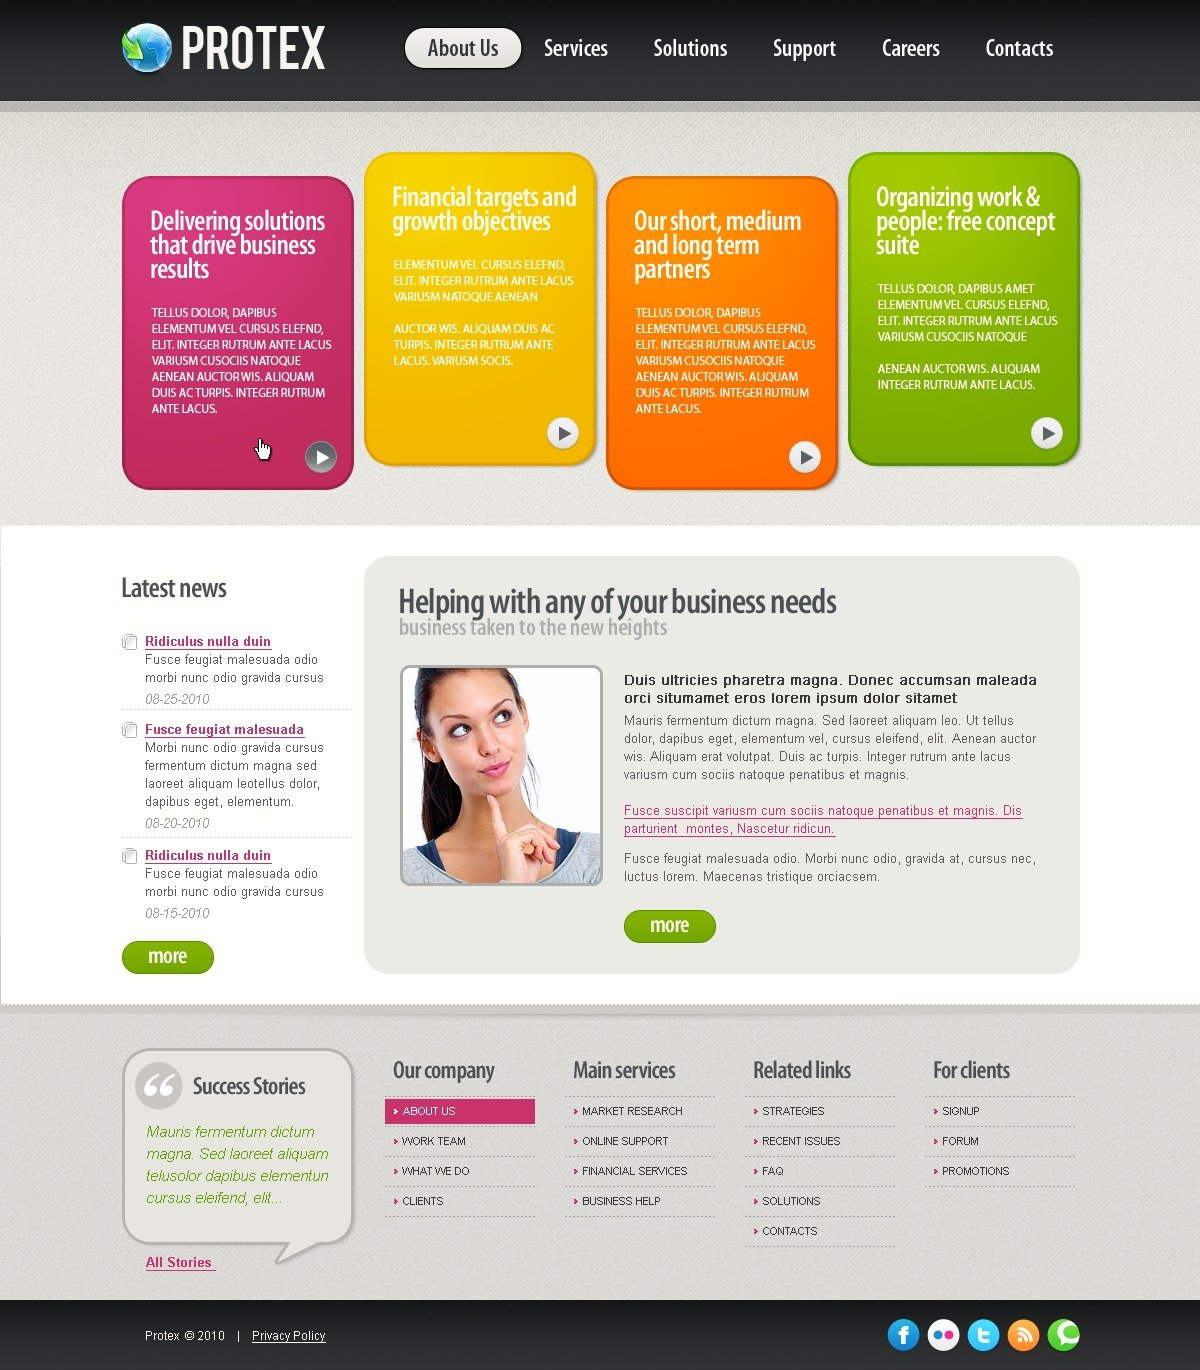 The Protex Business Company PSD Design 54328, one of the best PSD templates of its kind (business, wide), also known as protex business company PSD template, corporate solutions PSD template, innovations PSD template, contacts PSD template, service PSD template, support PSD template, information dealer PSD template, stocks PSD template, team PSD template, success PSD template, money PSD template, marketing PSD template, director PSD template, manager PSD template, analytics PSD template, planning PSD template, limited PSD template, office PSD template, sales and related with protex business company, corporate solutions, innovations, contacts, service, support, information dealer, stocks, team, success, money, marketing, director, manager, analytics, planning, limited, office, sales, etc.